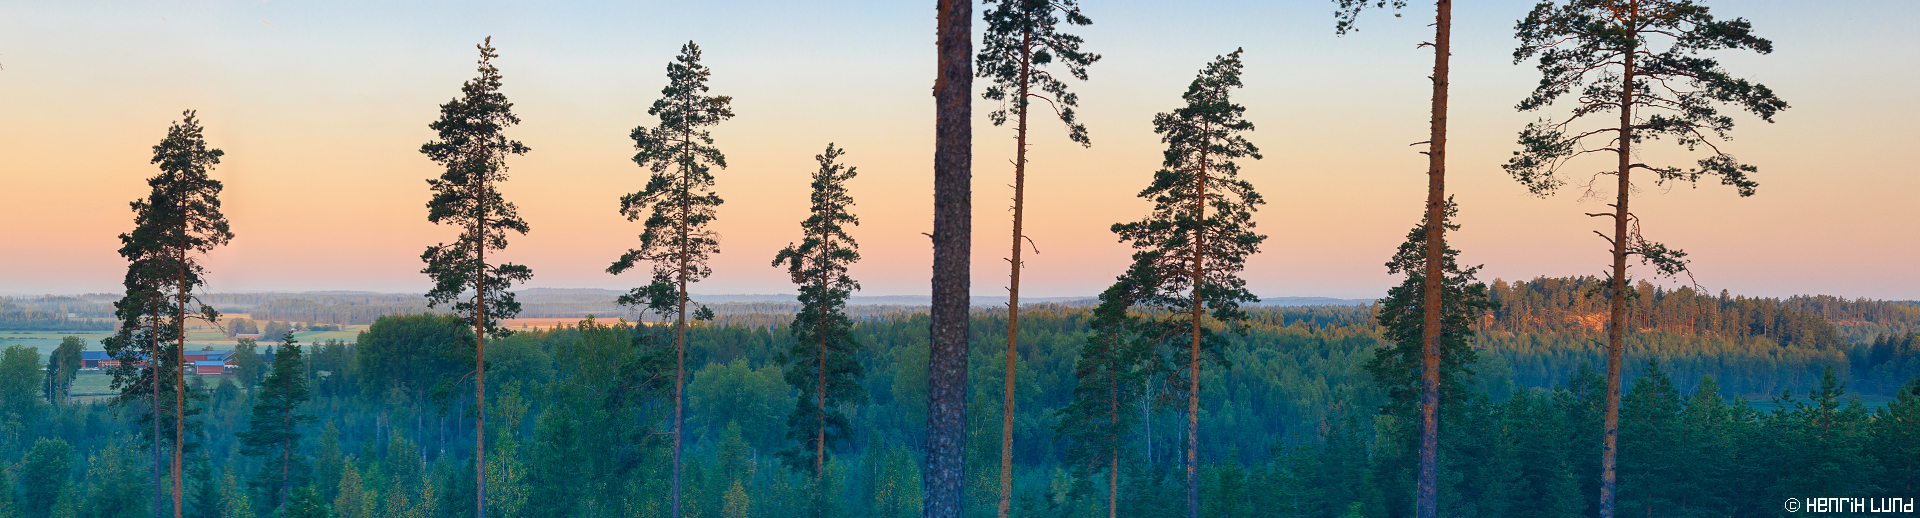 Morning panorama over Porlom, Lappträsk, Finland. August 2015.